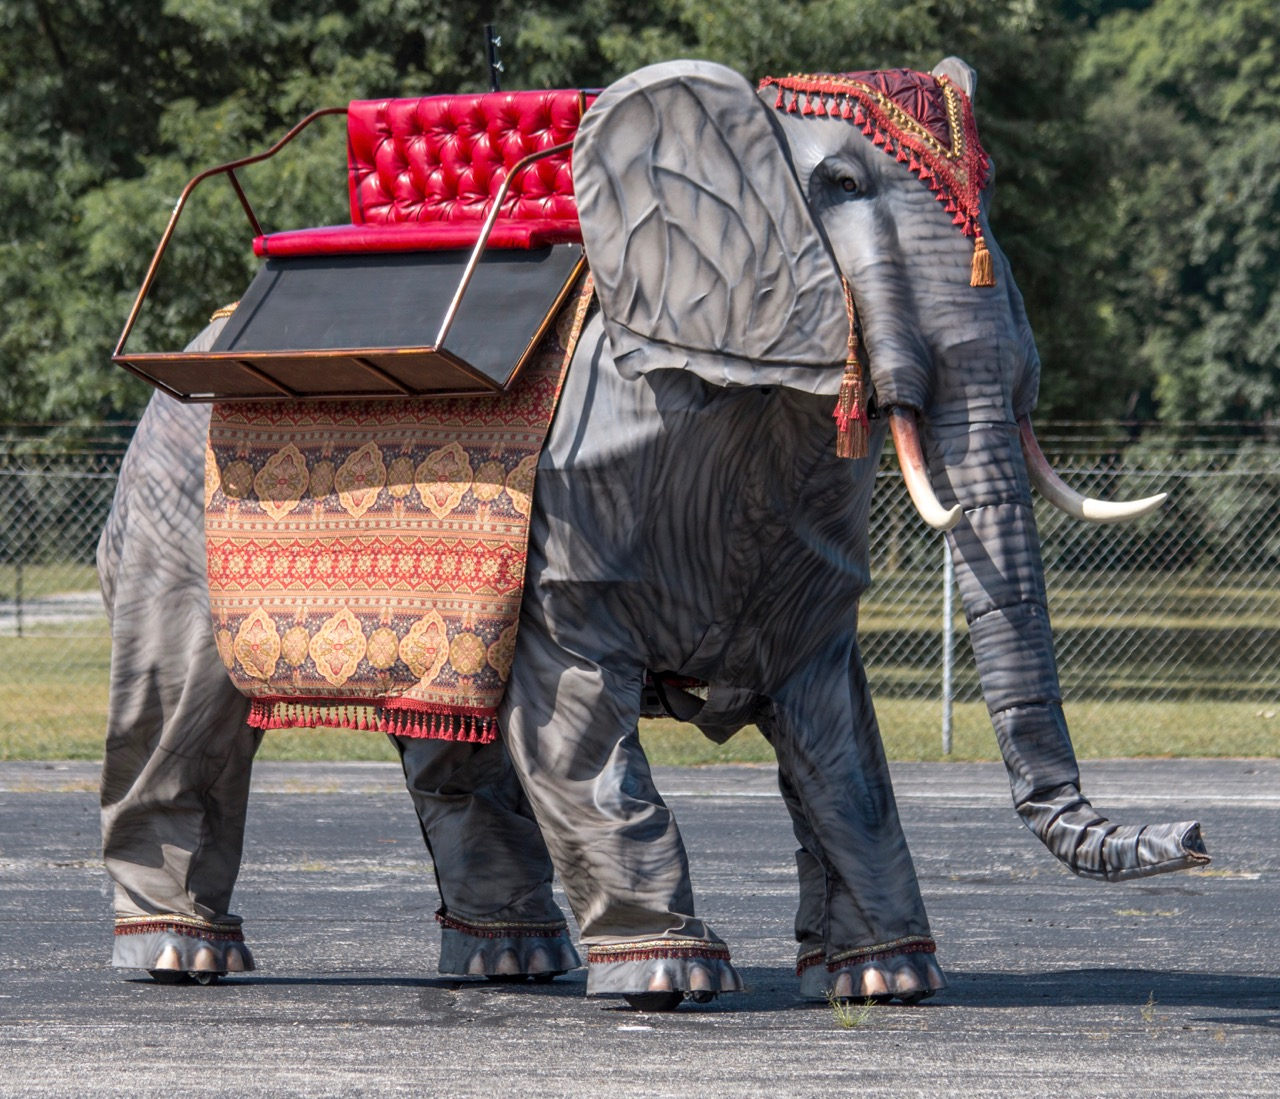 Wendell is an elephant-sized cybernetic animal | Auctions America photos